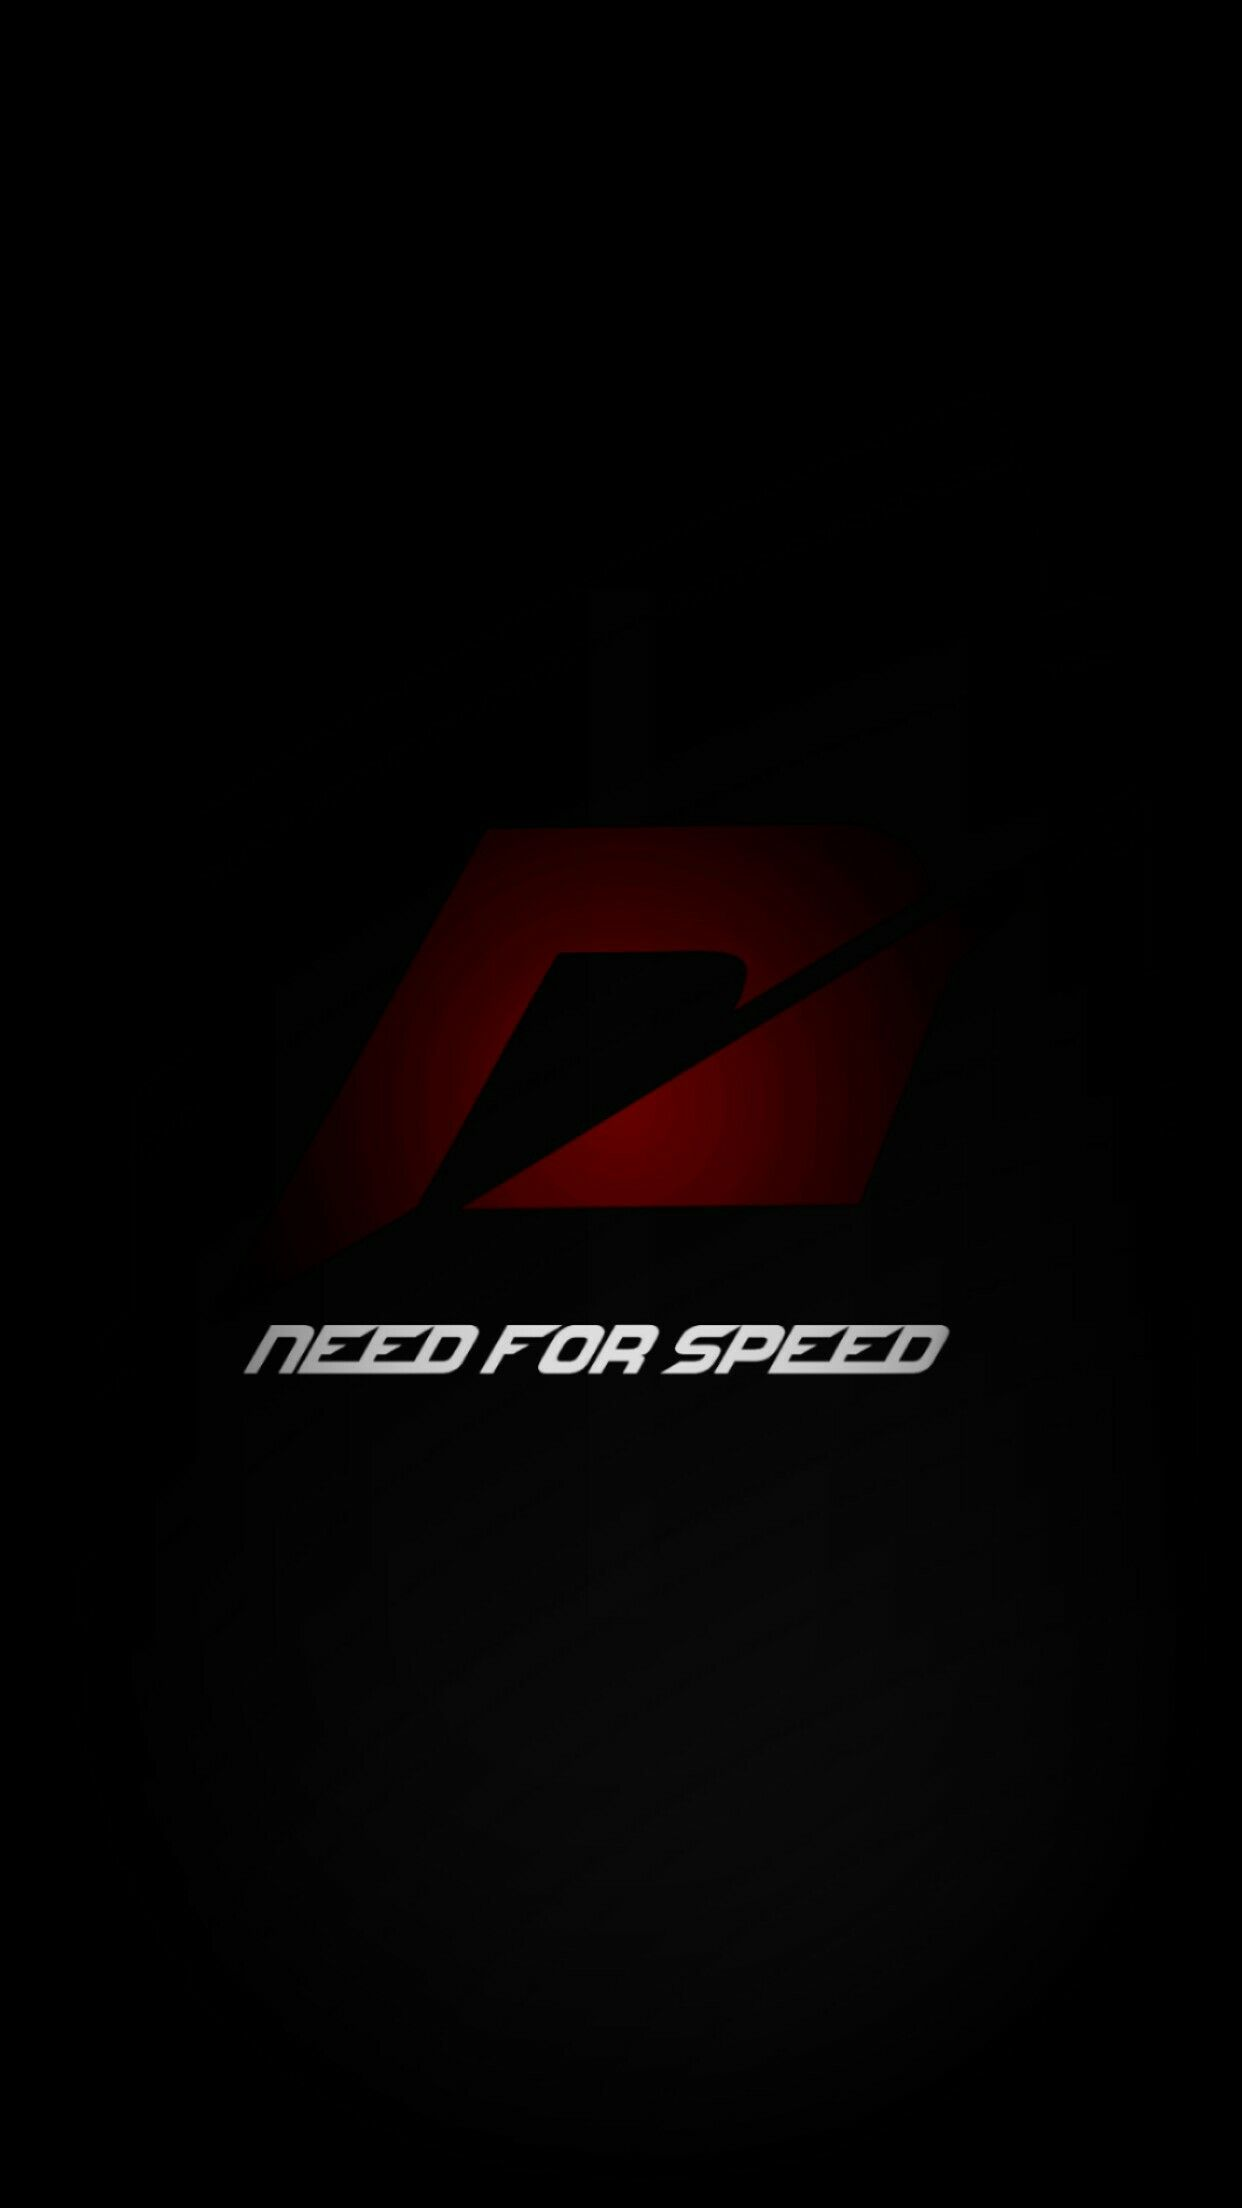 Nfs Pictures Image By King Need For Speed Cars Speed Logo